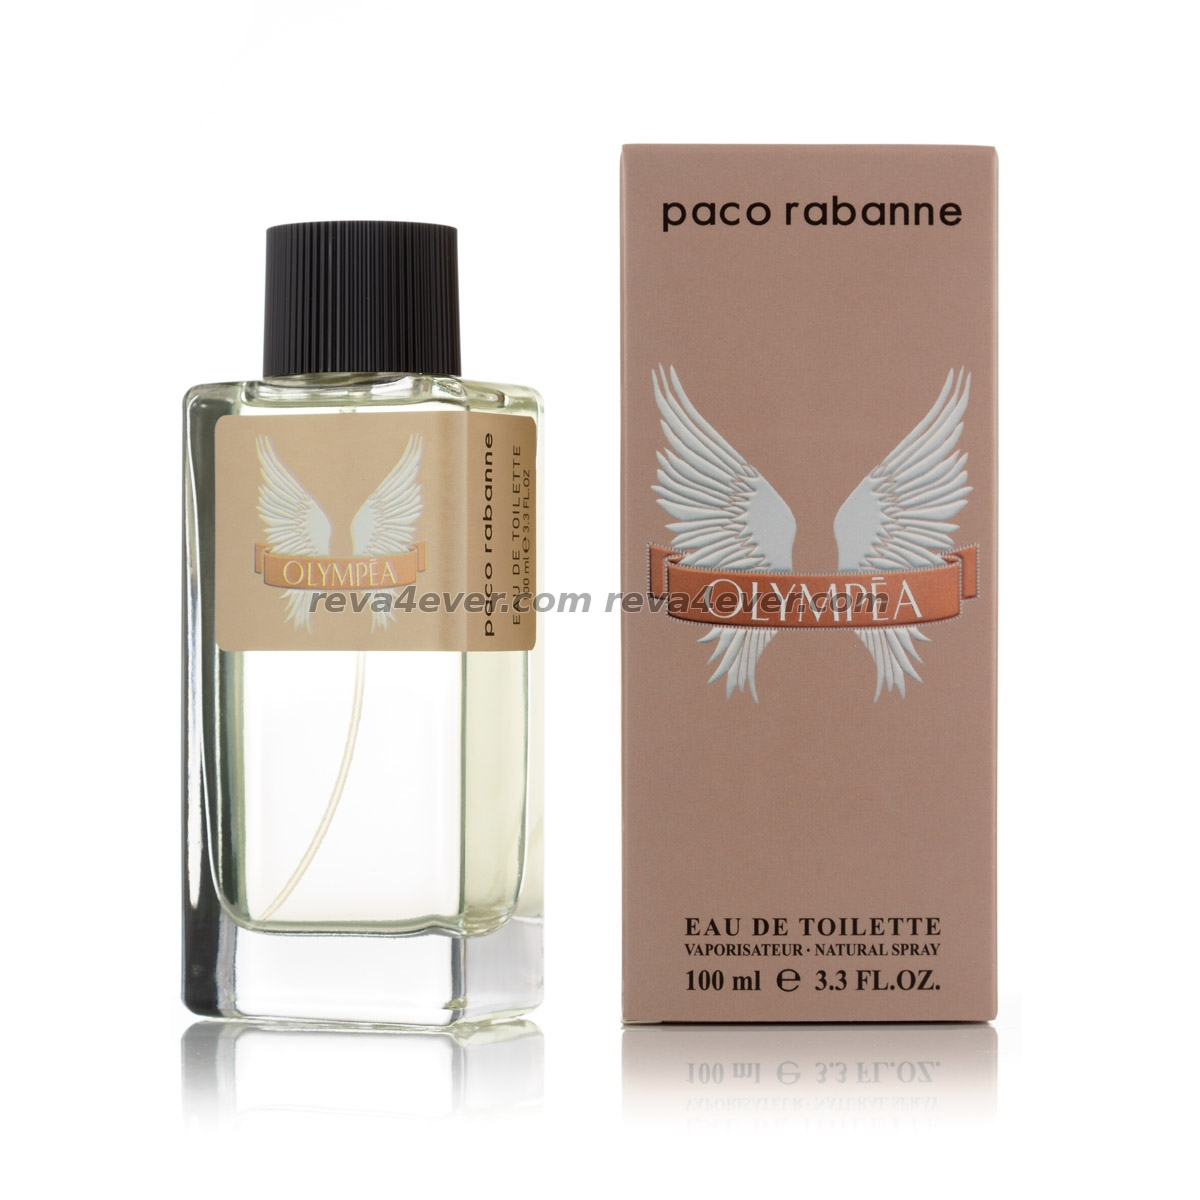 Paco Rabanne Olympea edp 100ml Imperatrice style